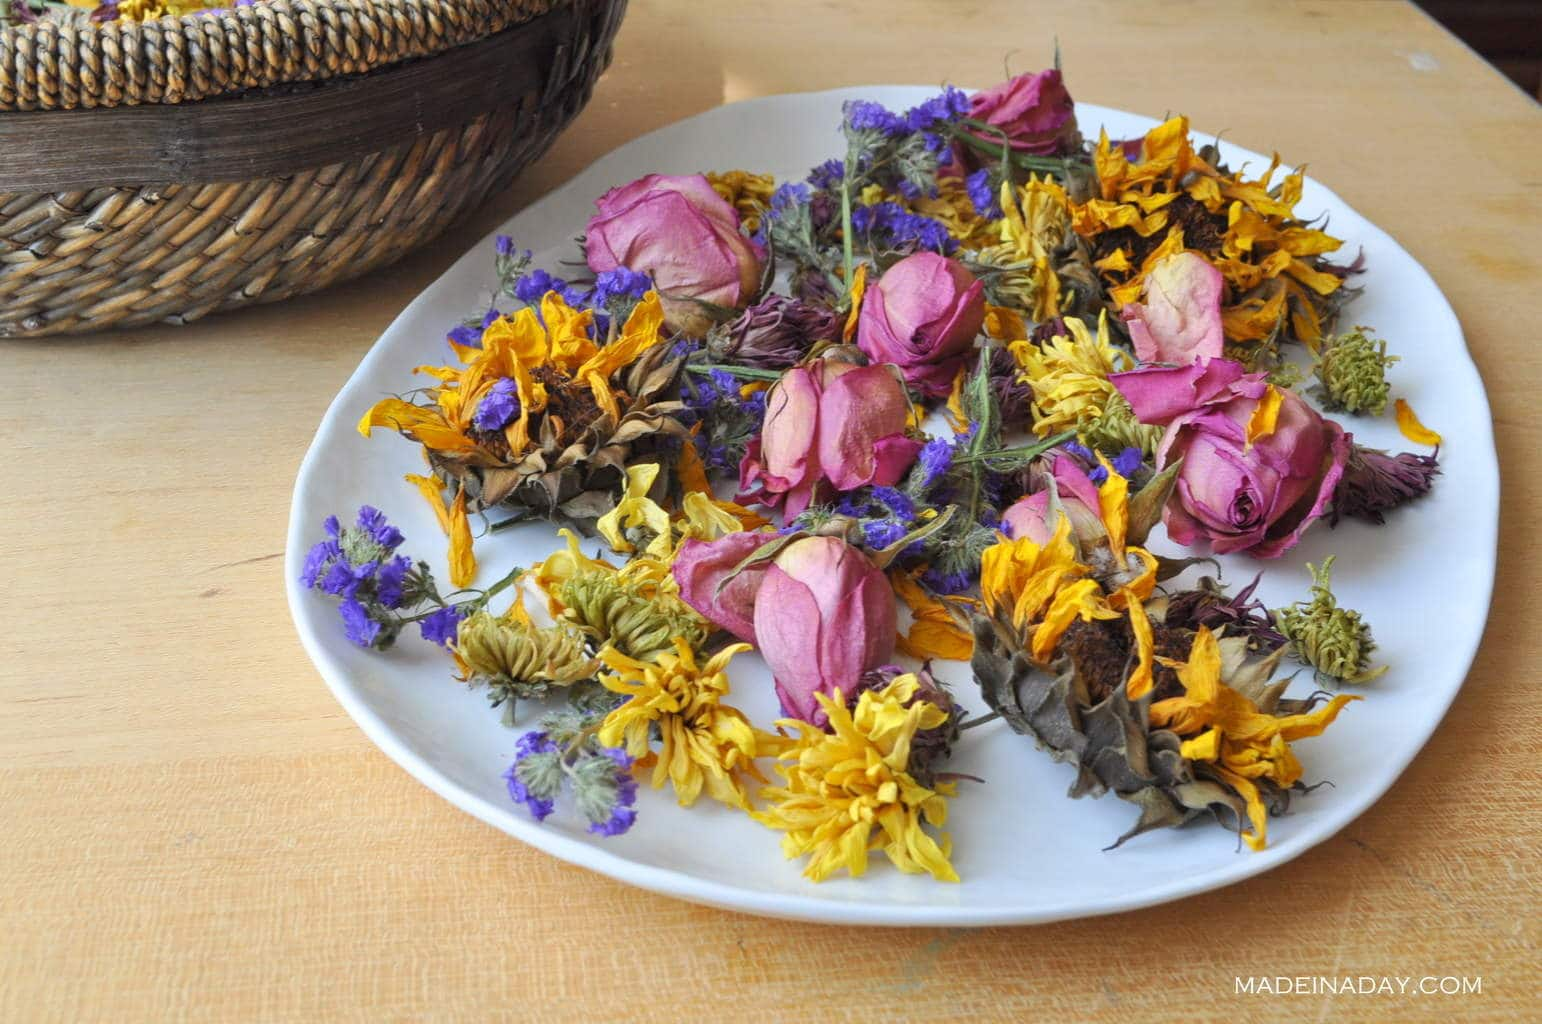 how to dry flowers in the oven, oven dried flowers